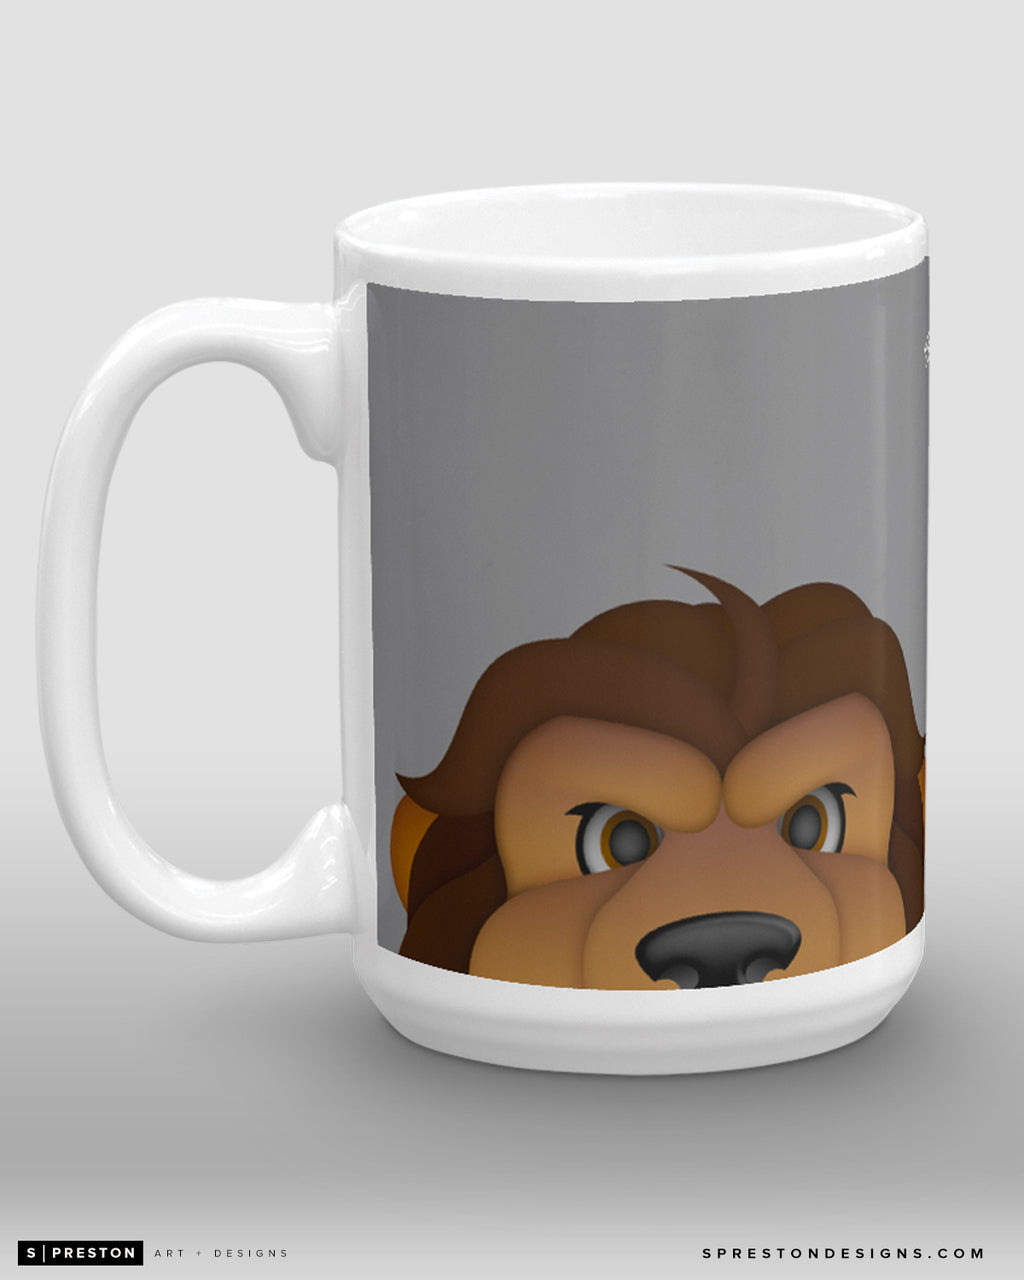 Minimalist Bailey Coffee Mug - NHL Licensed - Los Angeles Kings Mascot